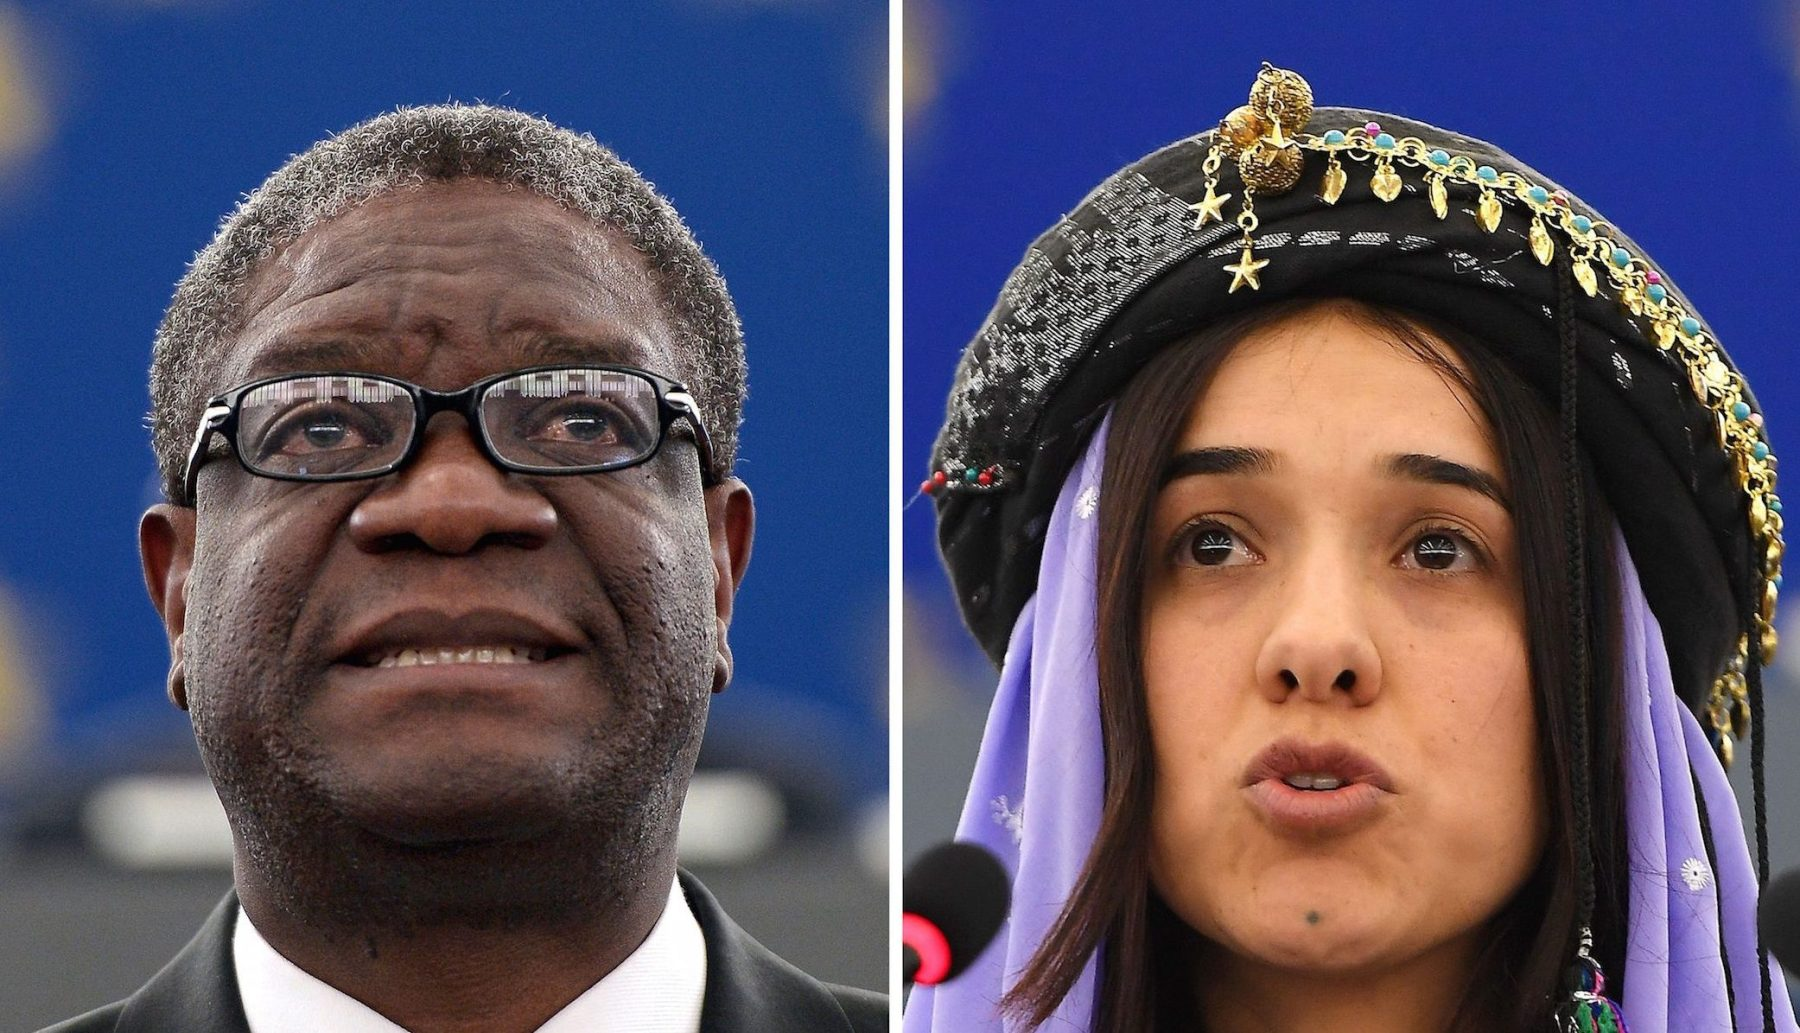 This combination created on October 5, 2018 of file pictures shows Congolese gynaecologist Denis Mukwege (L, on November 26, 2014 at the European Parliament in Strasbourg) and Nadia Murad, public advocate for the Yazidi community in Iraq and survivor of sexual enslavement by the Islamic State jihadists (on December 13, 2016 at the European parliament in Strasbourg). Congolese doctor Denis Mukwege and Yazidi campaigner Nadia Murad won the 2018 Nobel Peace Prize on October 5, 2018 for their work in fighting sexual violence in conflicts around the world.  (Photo by FREDERICK FLORIN/AFP/Getty Images)